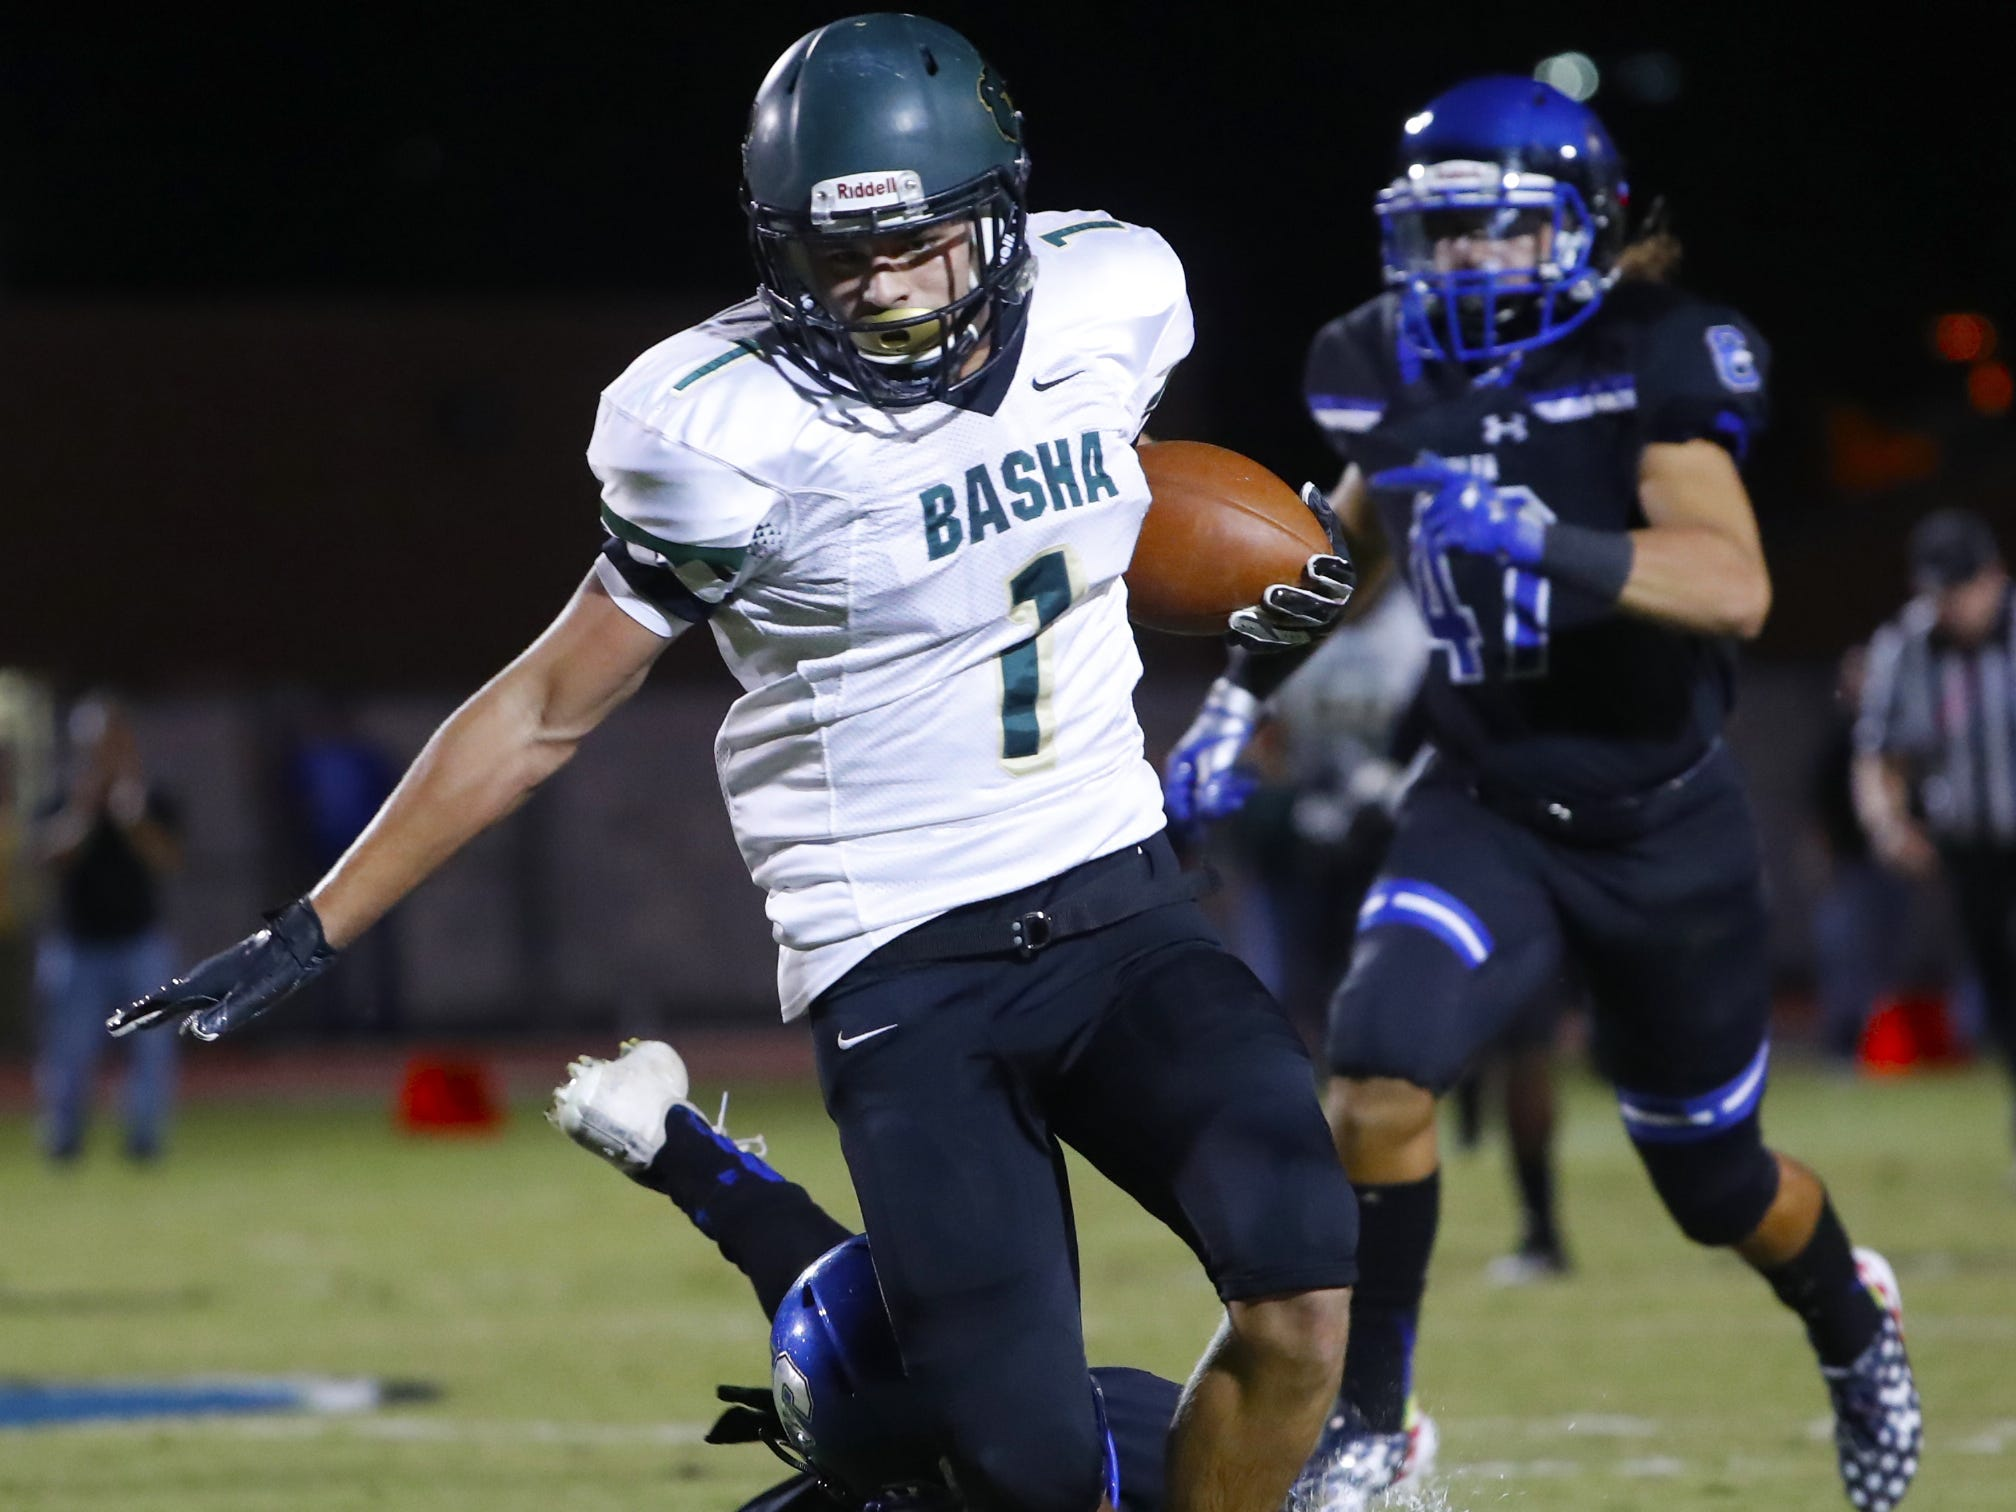 Basha's Ty Siffermann (1) breaks a tackle from a Chandler defender at Chandler High School in Chandler, Ariz. on October 12, 2018.